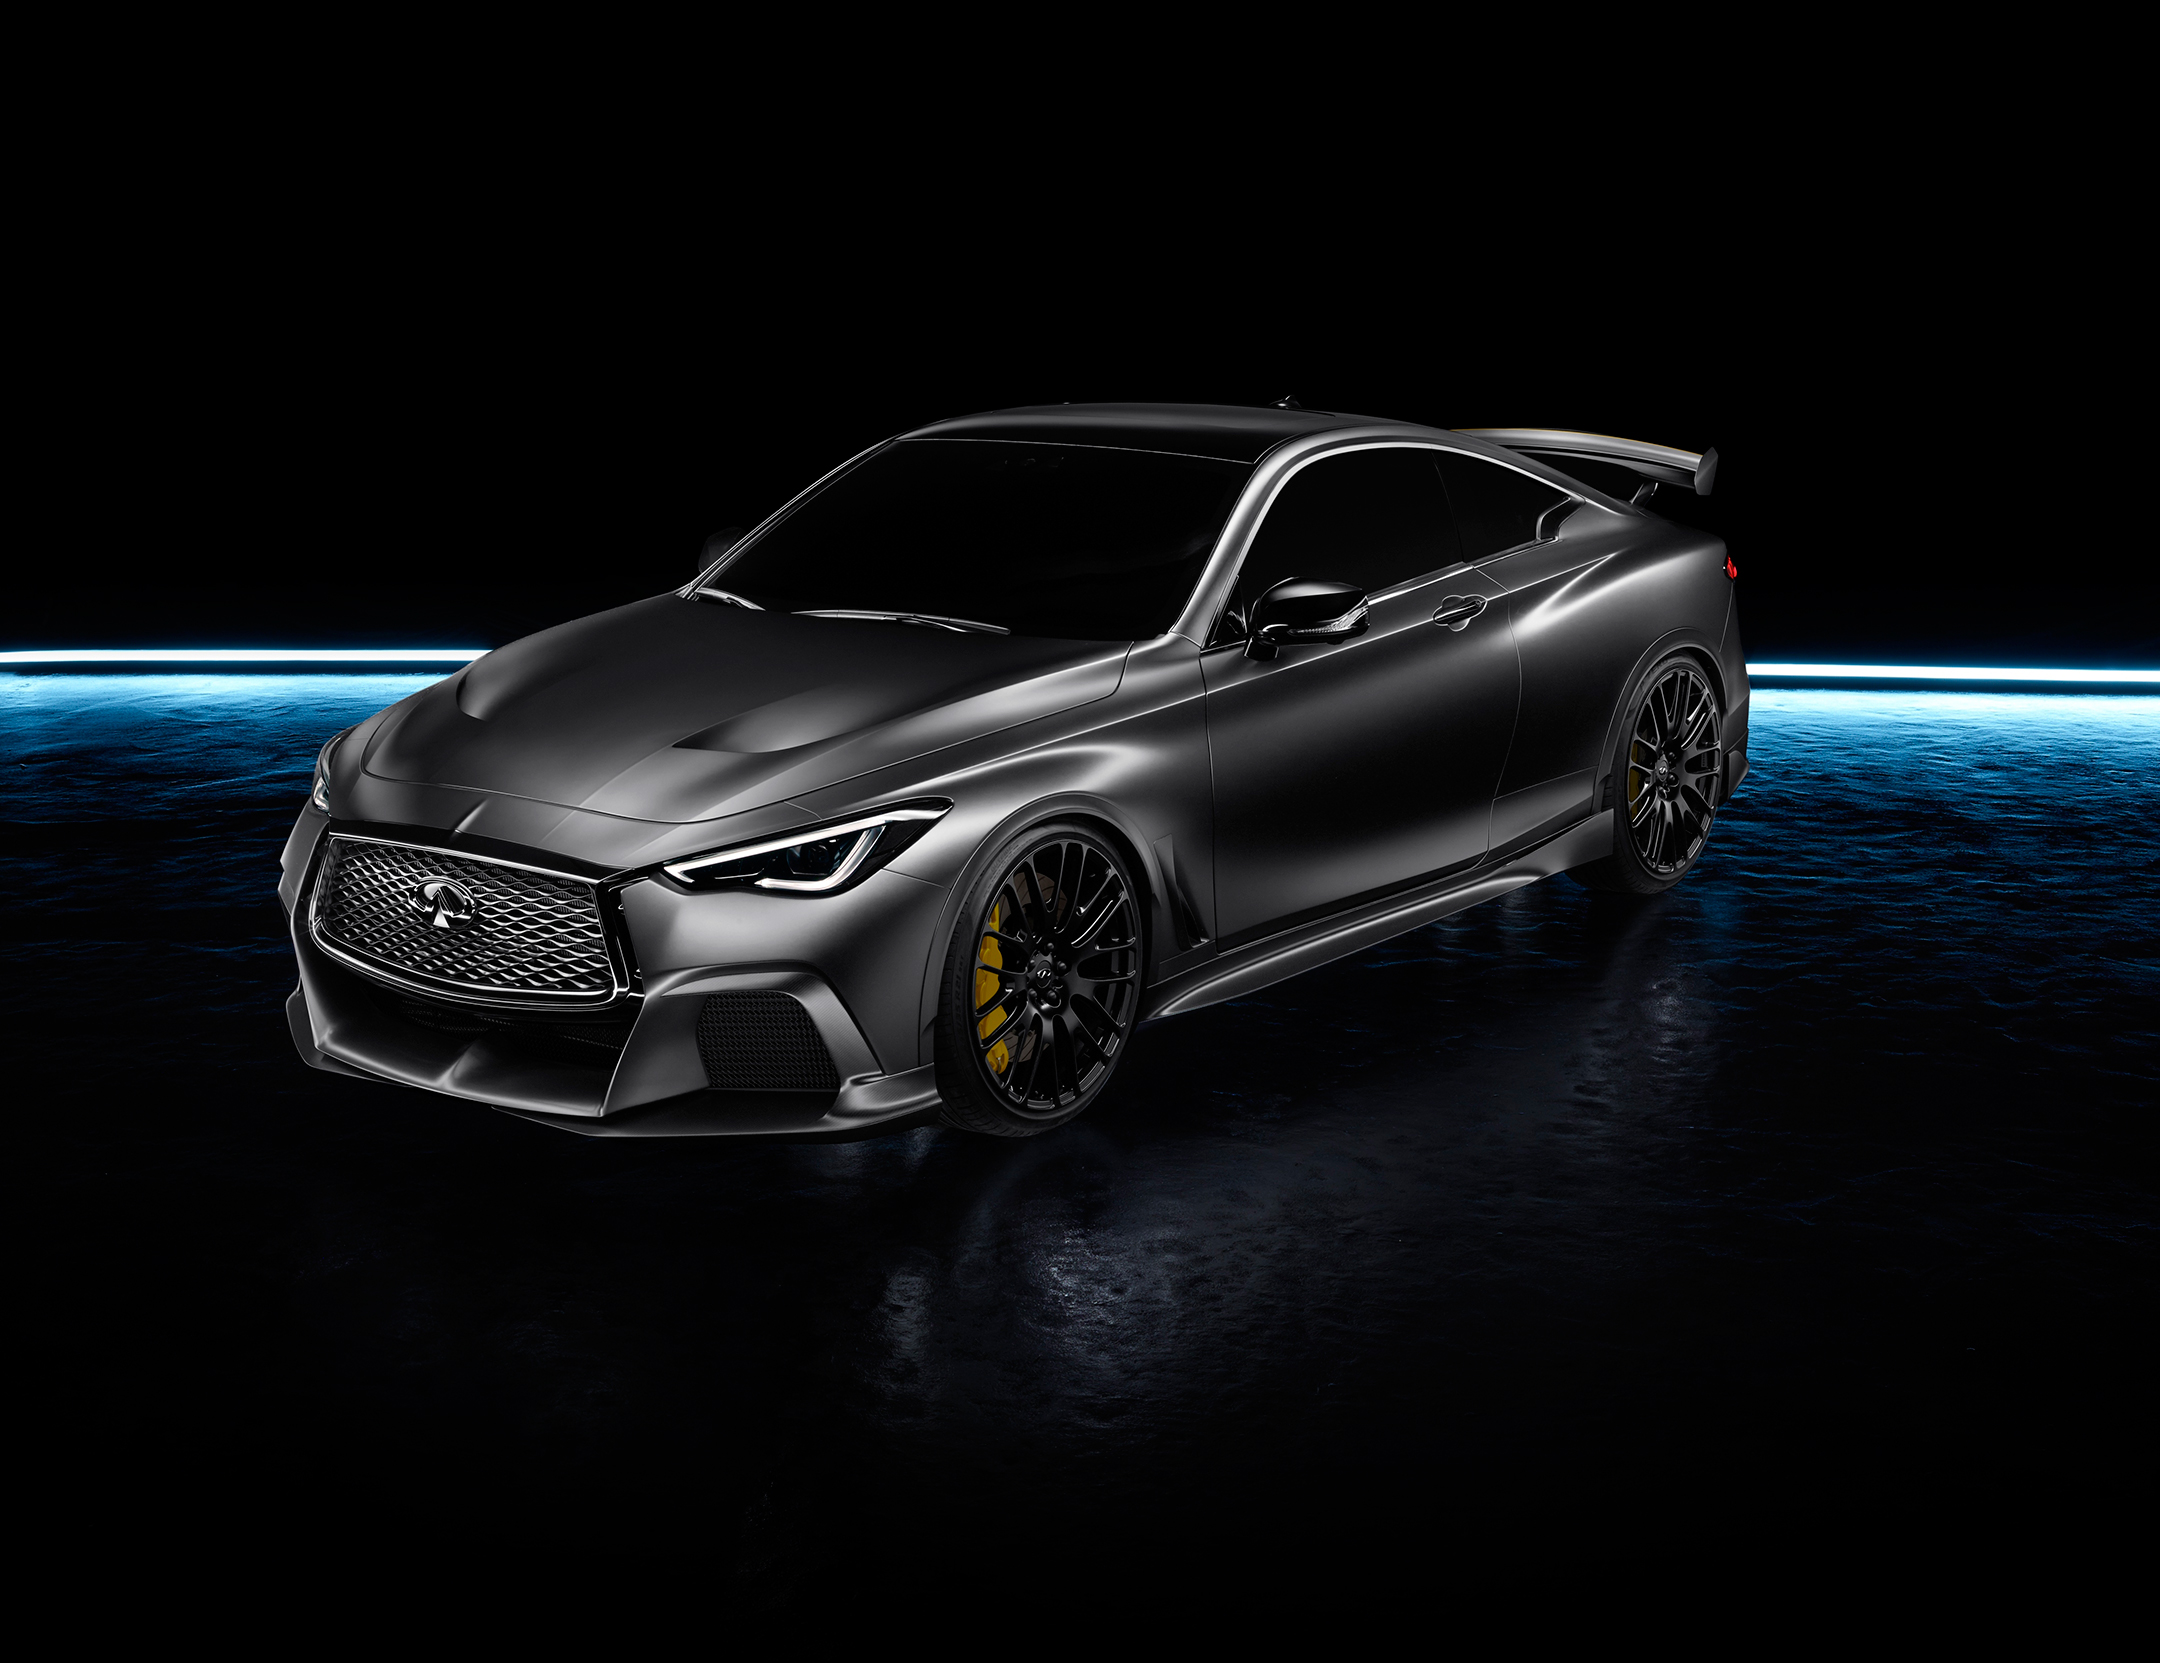 INFINITI Project Black S - 2017 - front side-face / profil avant